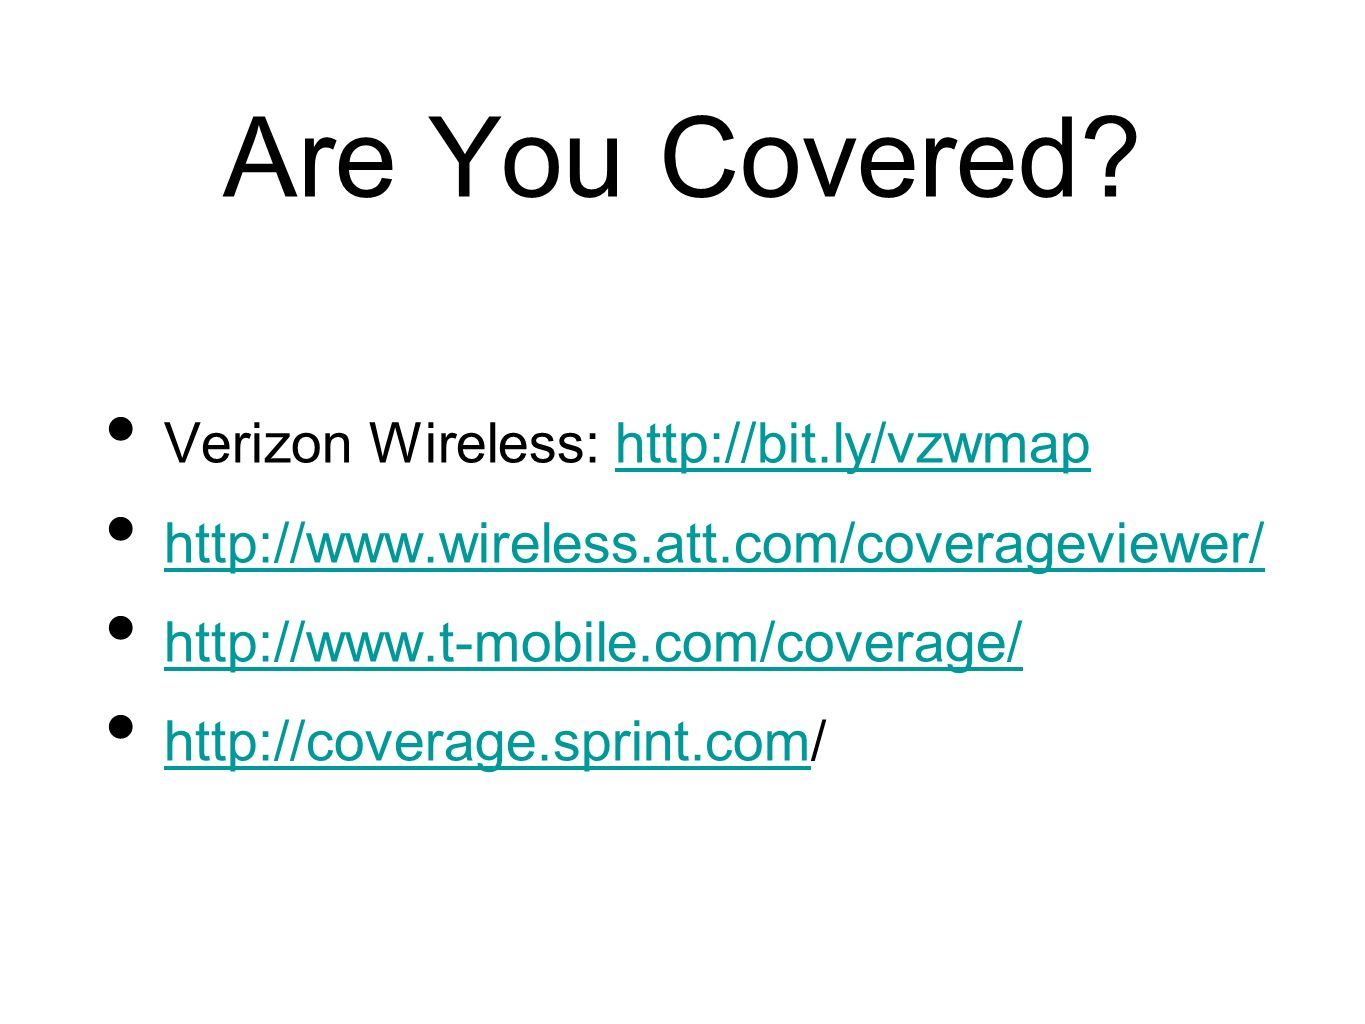 Are You Covered Verizon Wireless: http://bit.ly/vzwmap